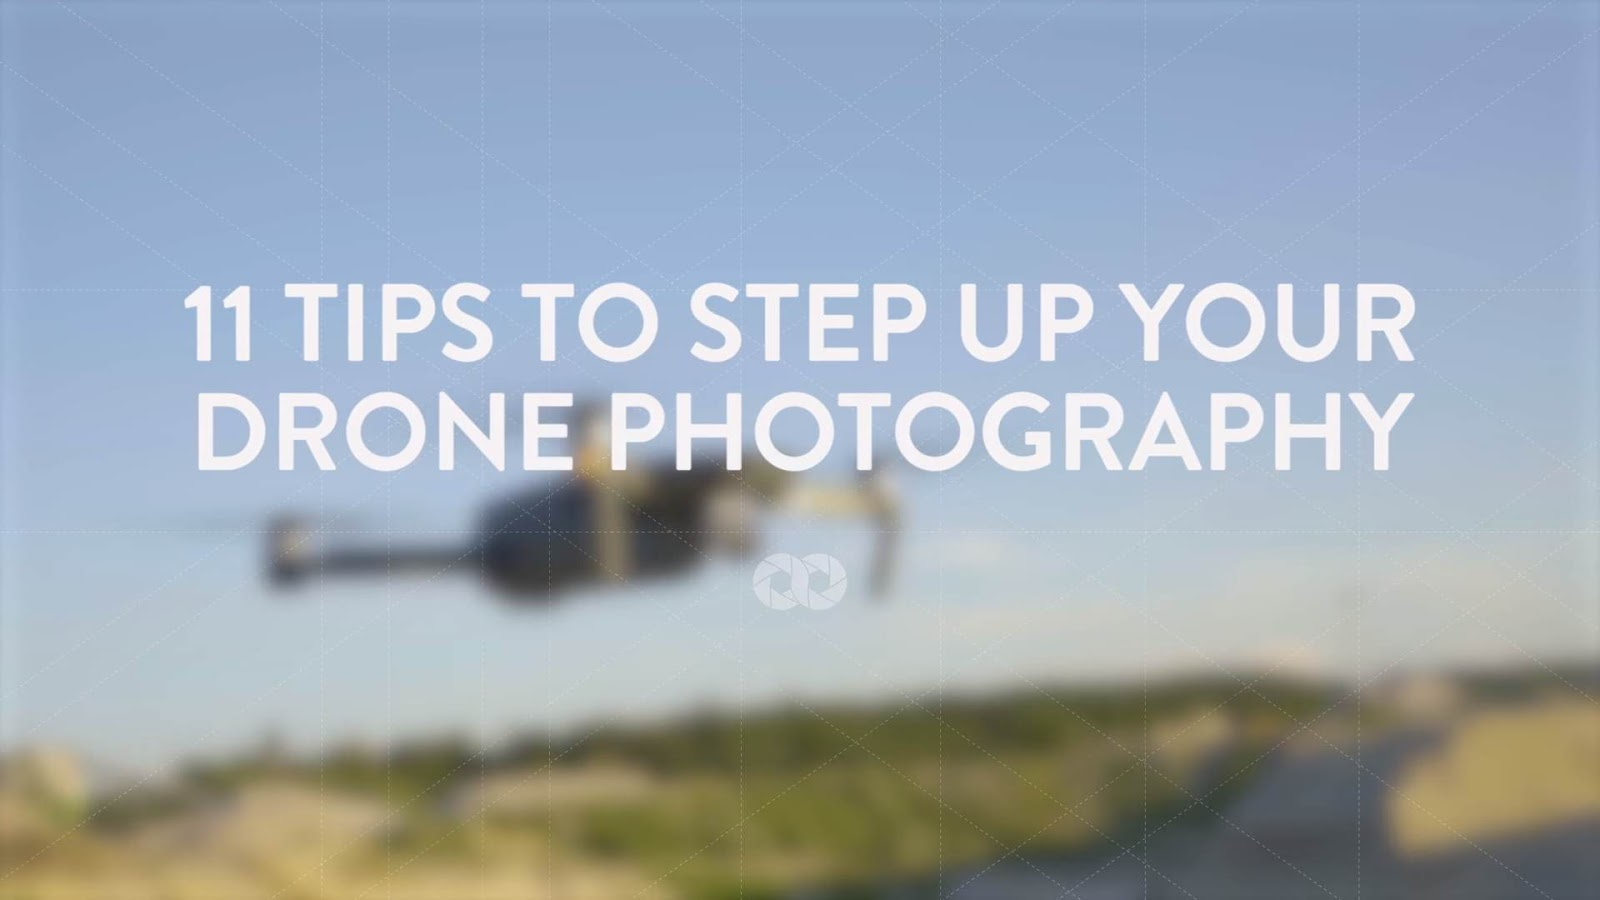 11 Tips to Up Your Drone Photography